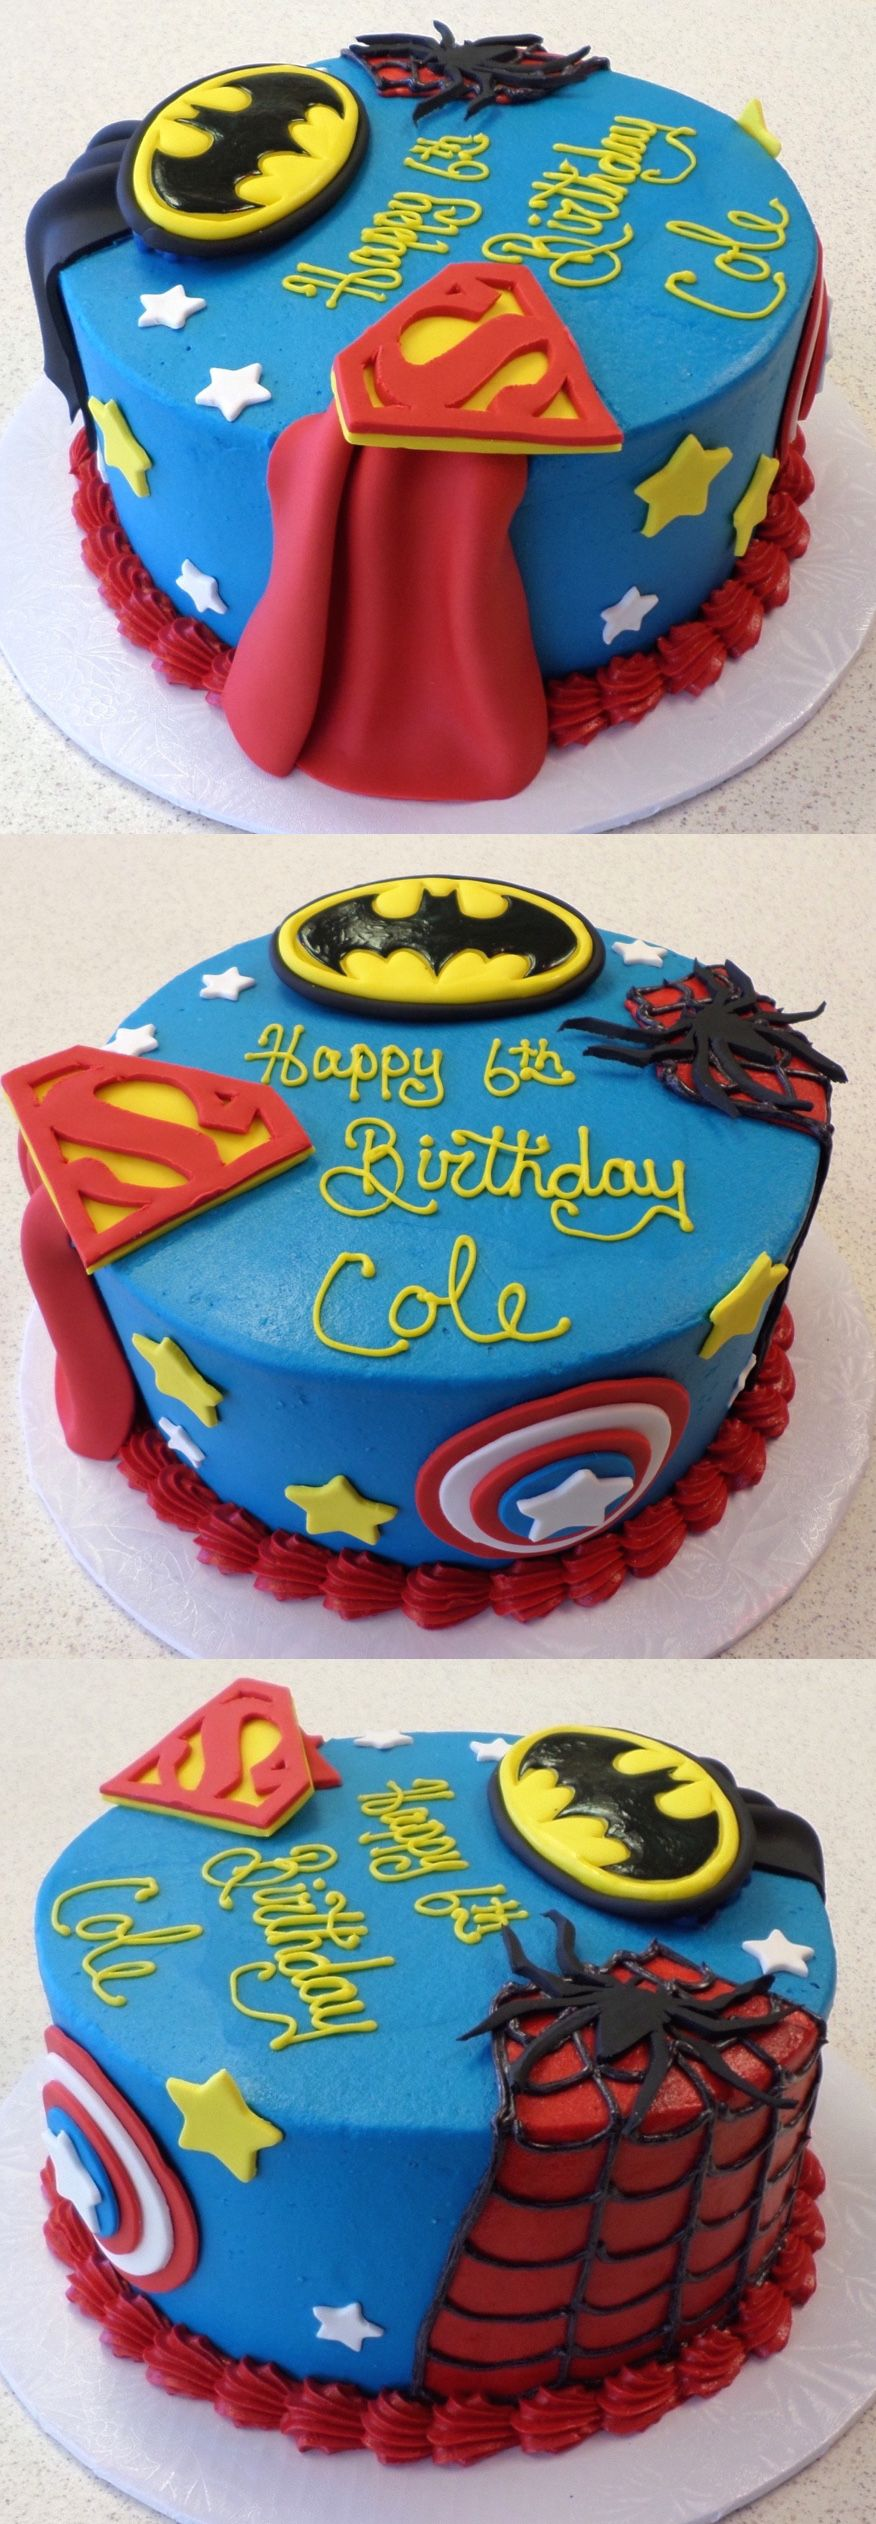 Villains wouldnt stand a chance against this superhero cake